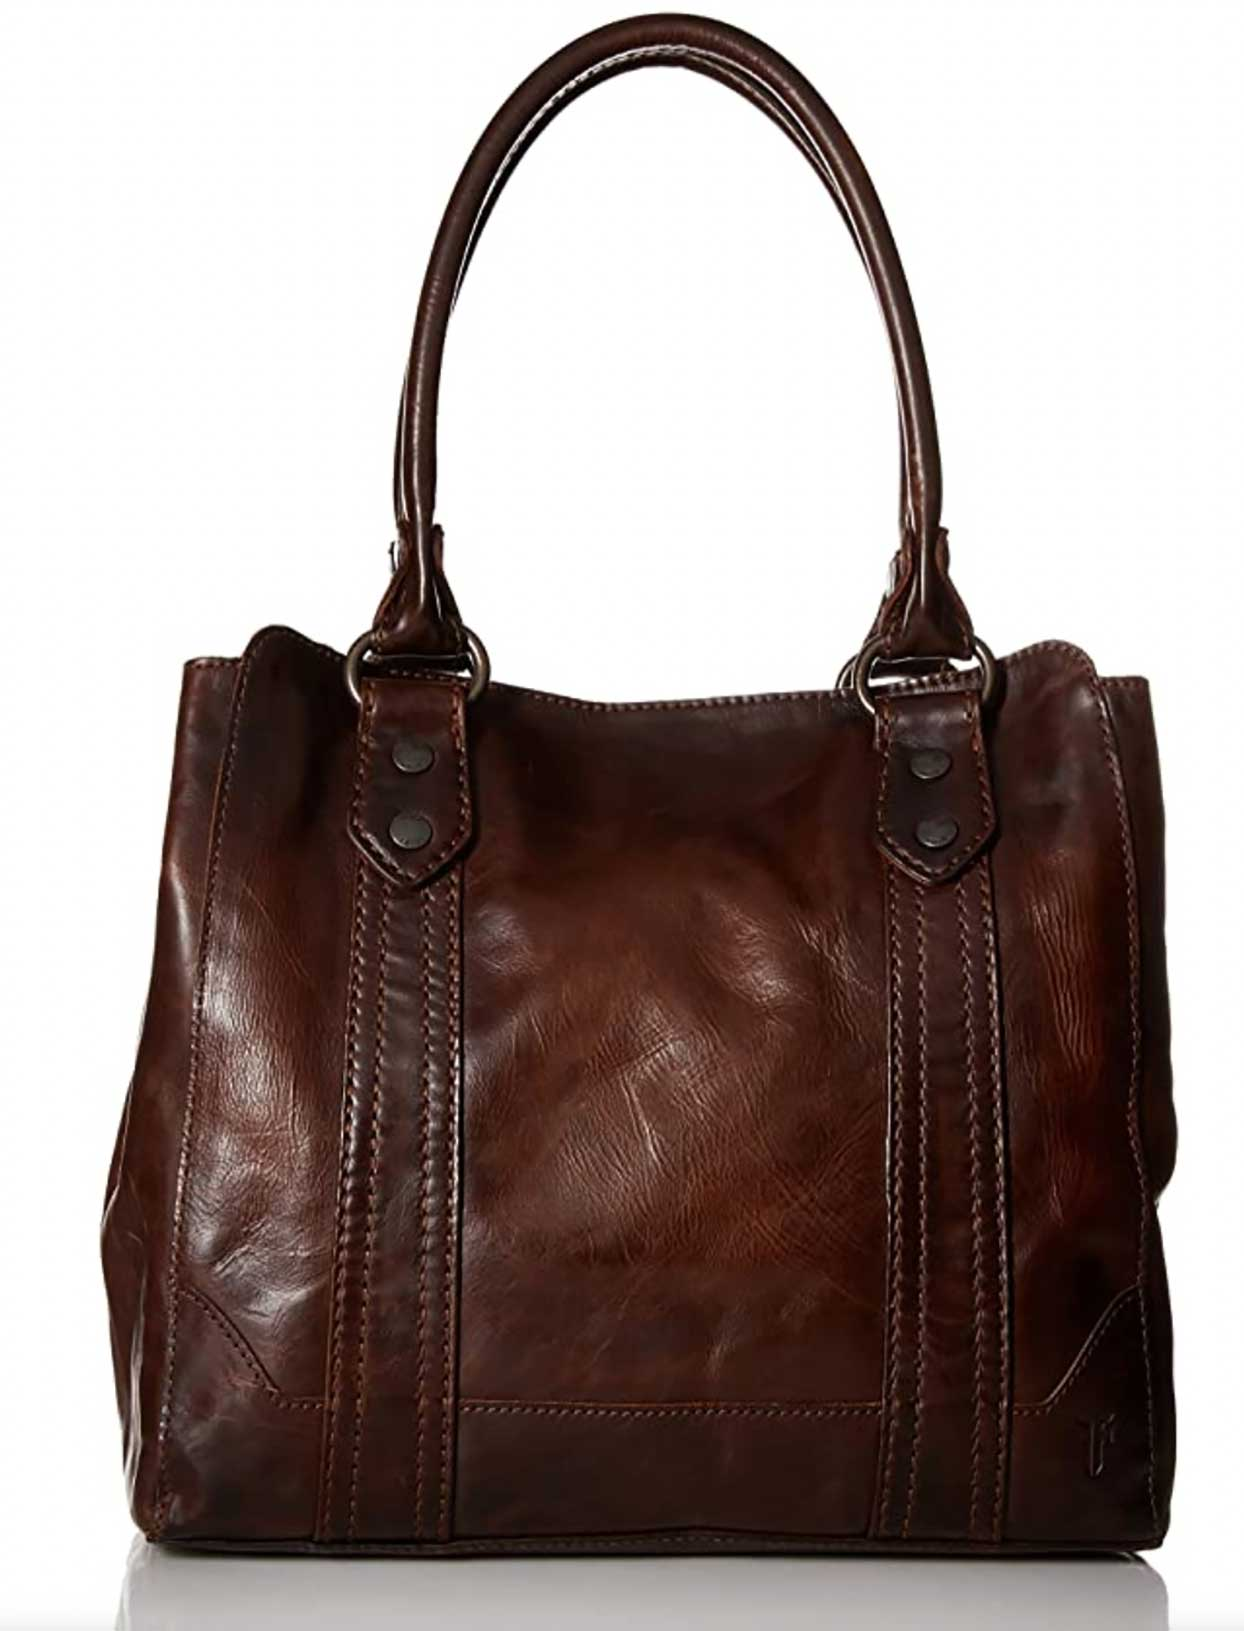 All-leather Frye Melissa Tote with a 9-inch shoulder strap and snap closure